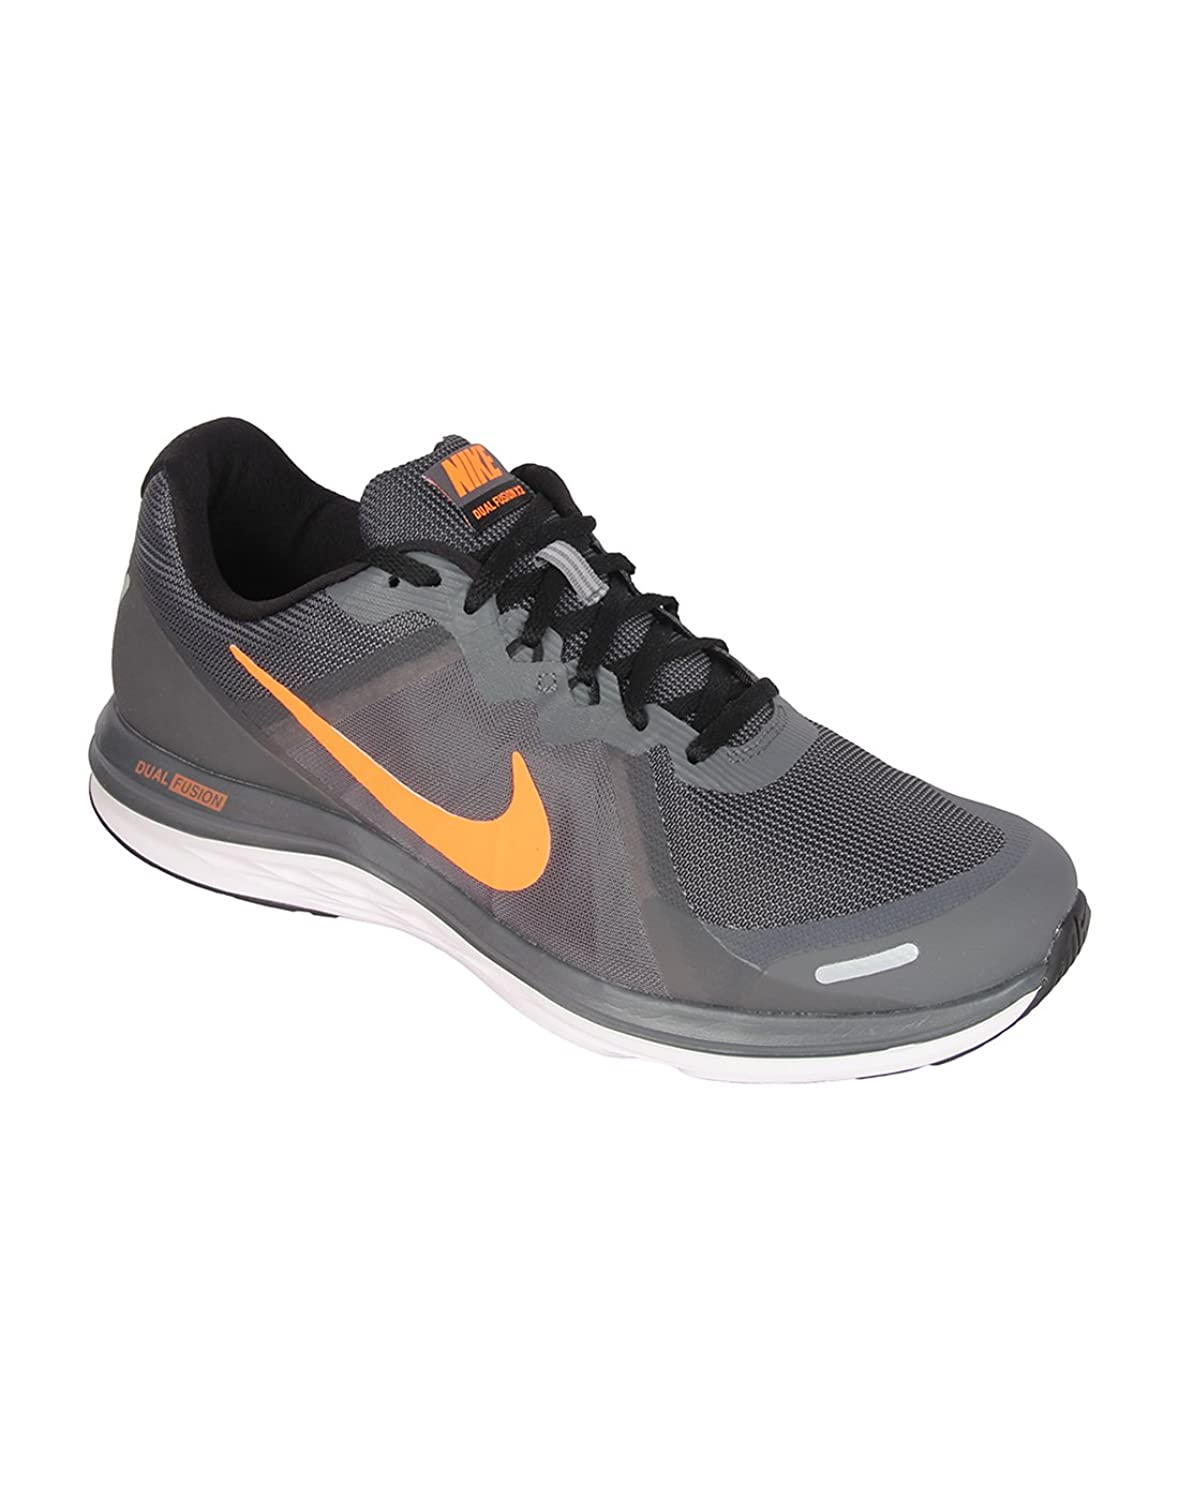 Nike Men's DUAL FUSION X 2 Grey Running Shoes(UK-7): Buy Online at Low  Prices in India - Amazon.in